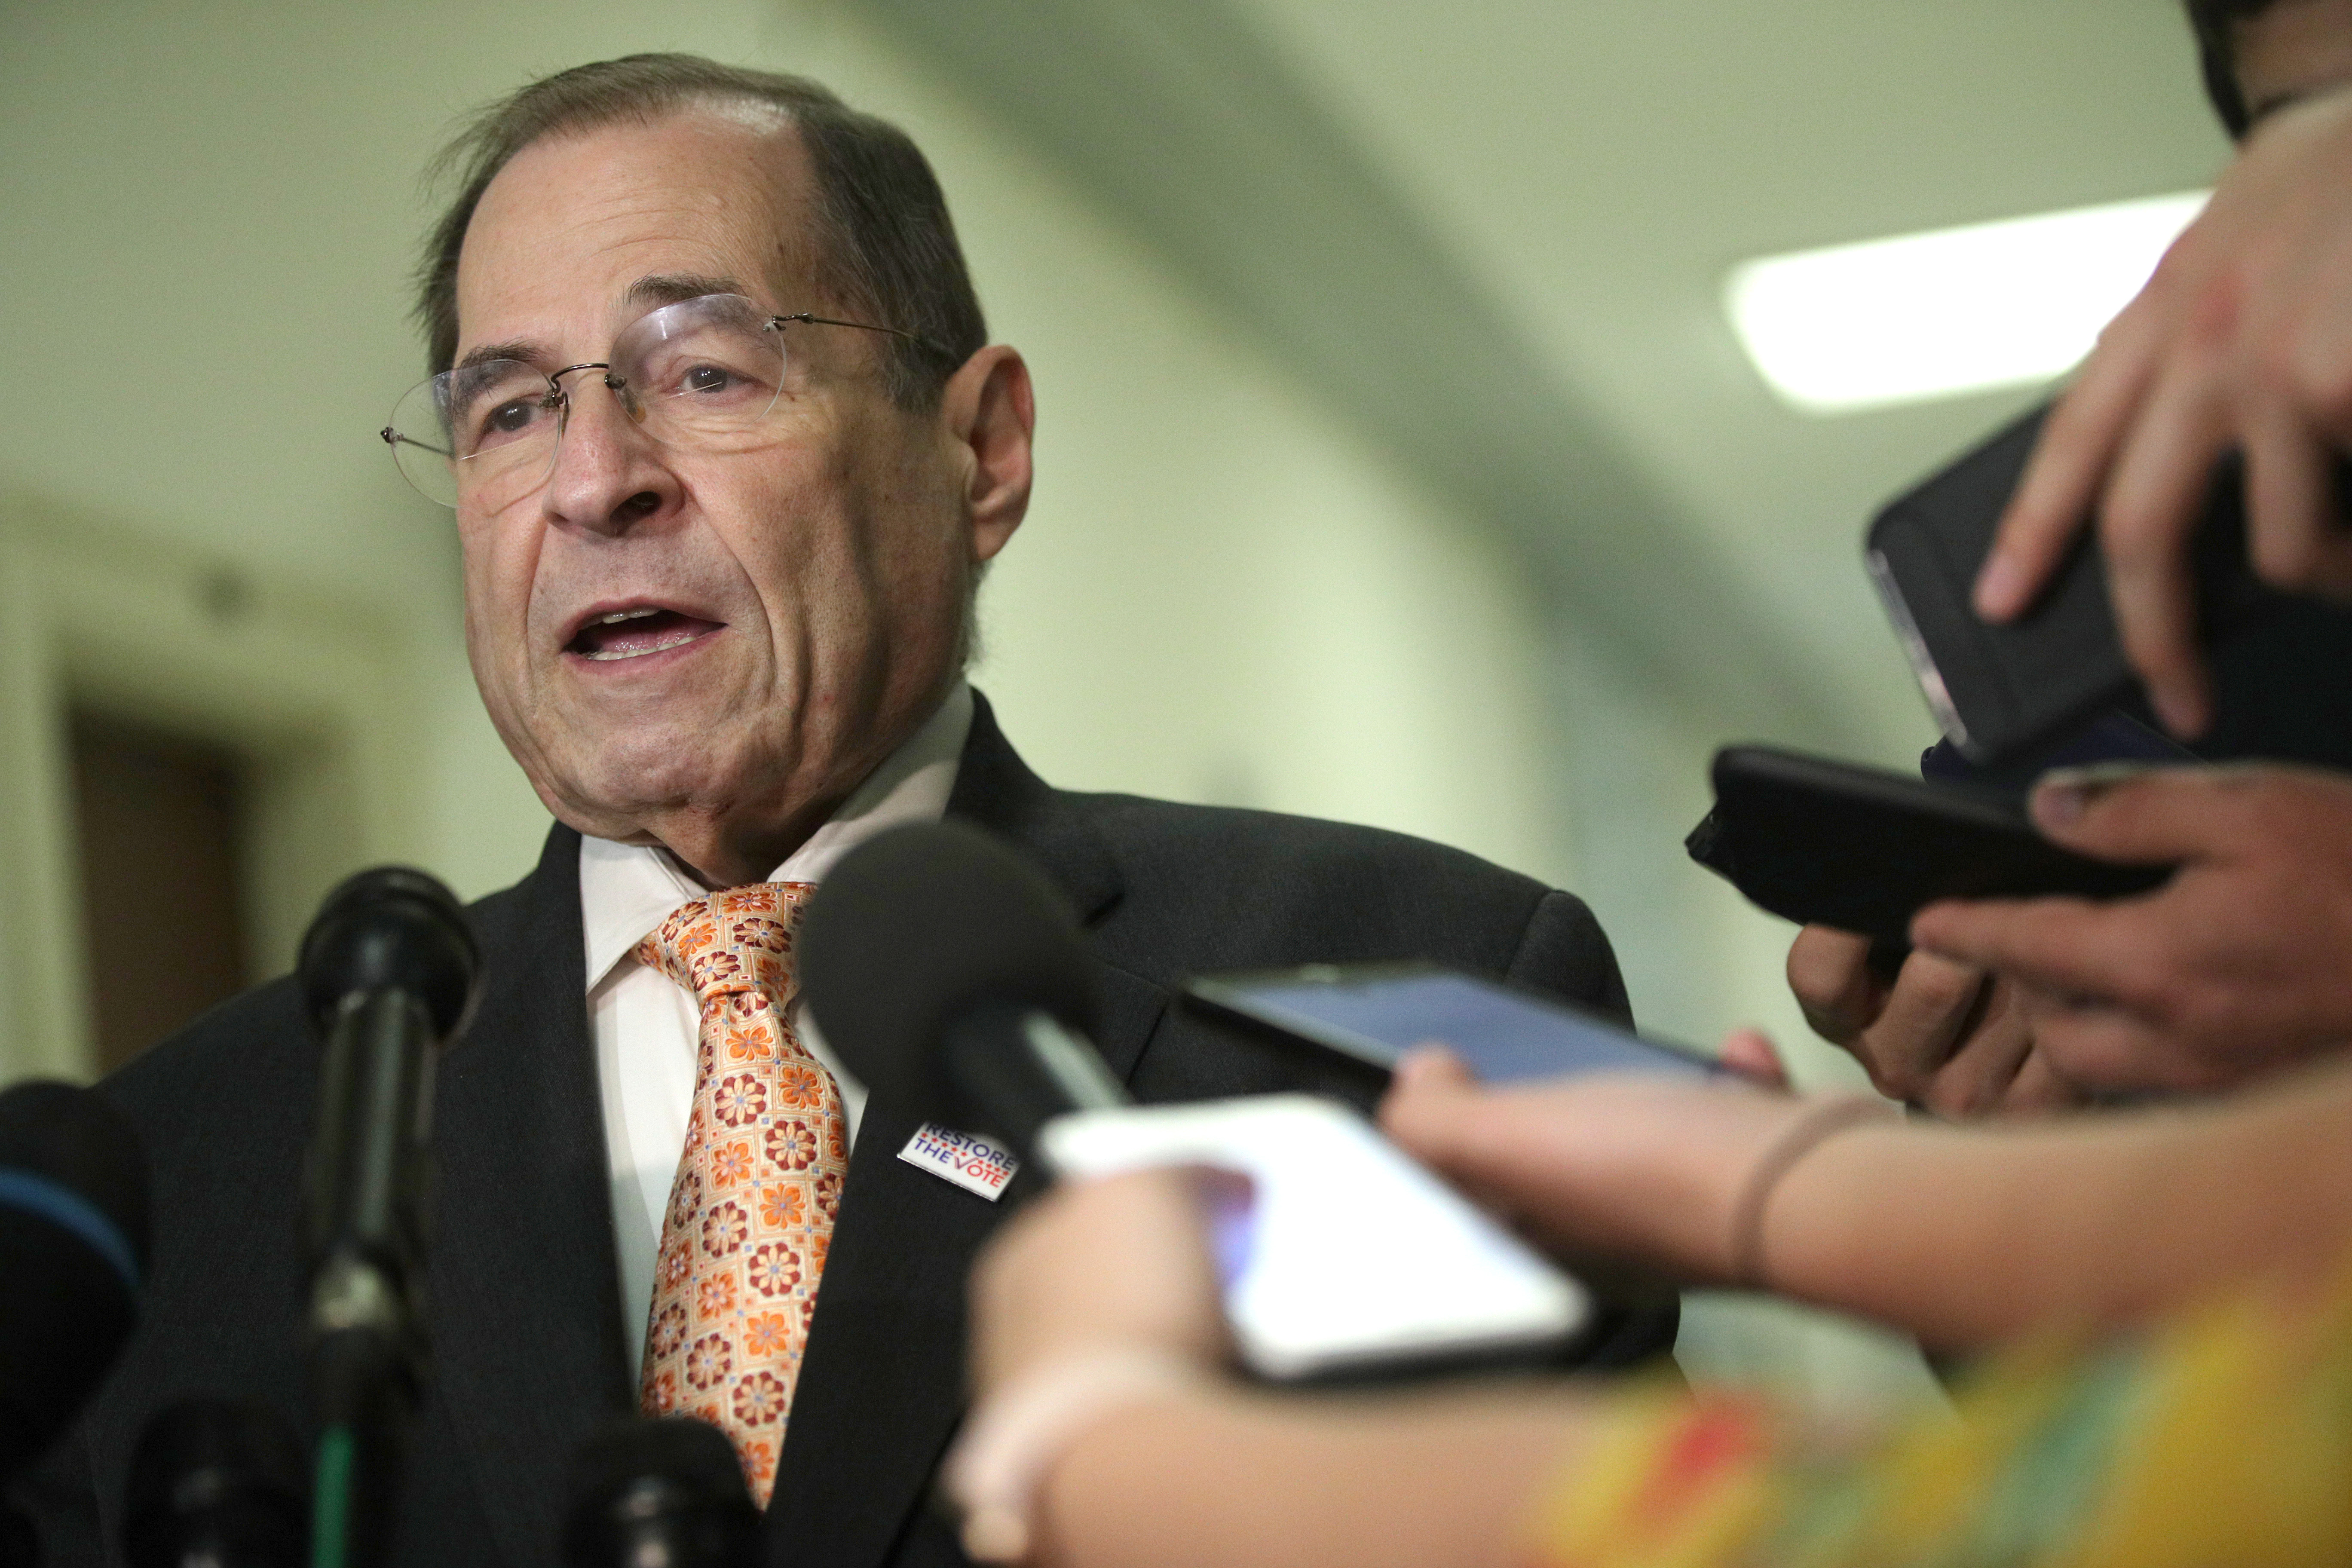 U.S. House Judiciary Committee Chairman Rep. Jerry Nadler speaks to members of the media at Rayburn House Office Building on Capitol Hill June 26, 2019 in Washington, DC. (Photo by Alex Wong/Getty Images)